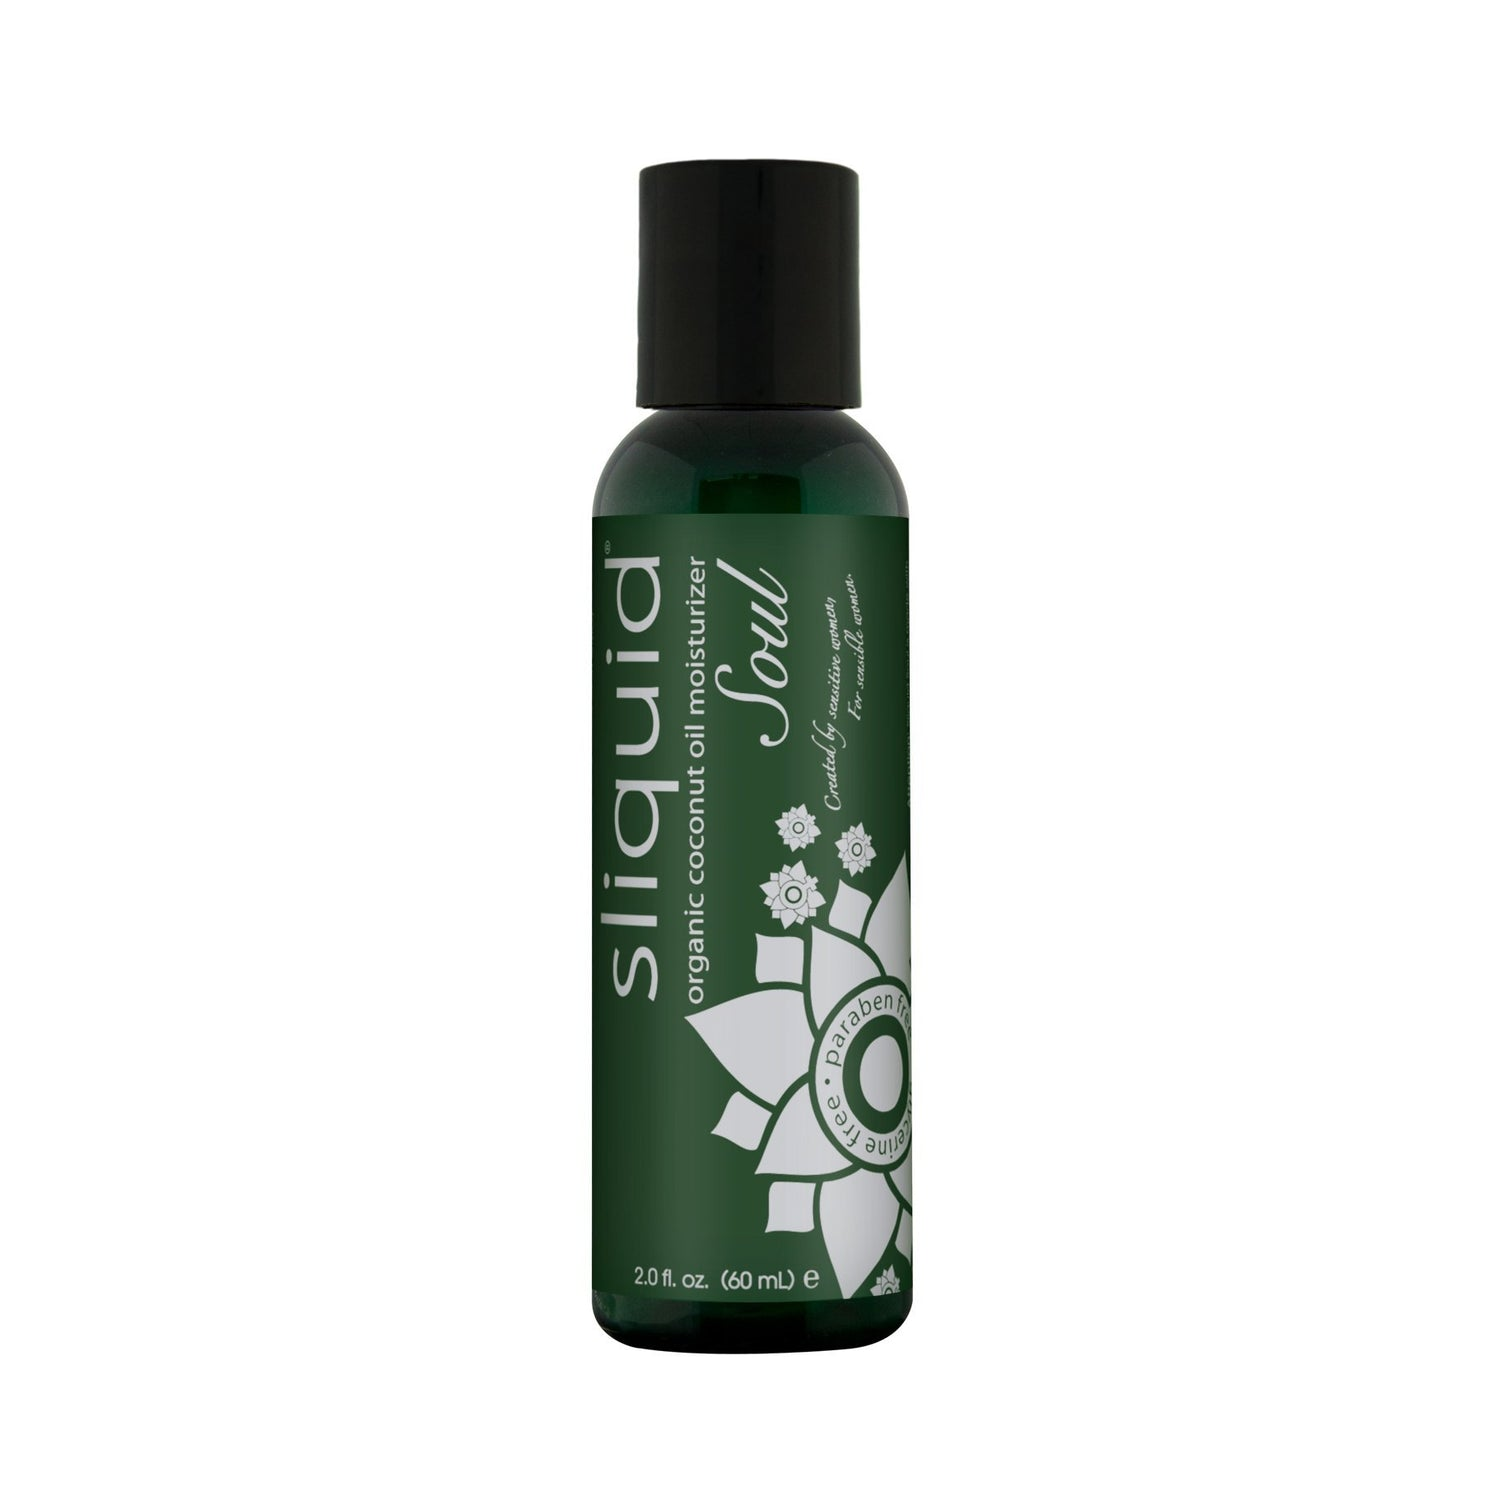 Sliquid - Soul Naturals Lubricant Bottle 2 oz (Lube) Lube (Water Based) - CherryAffairs Singapore